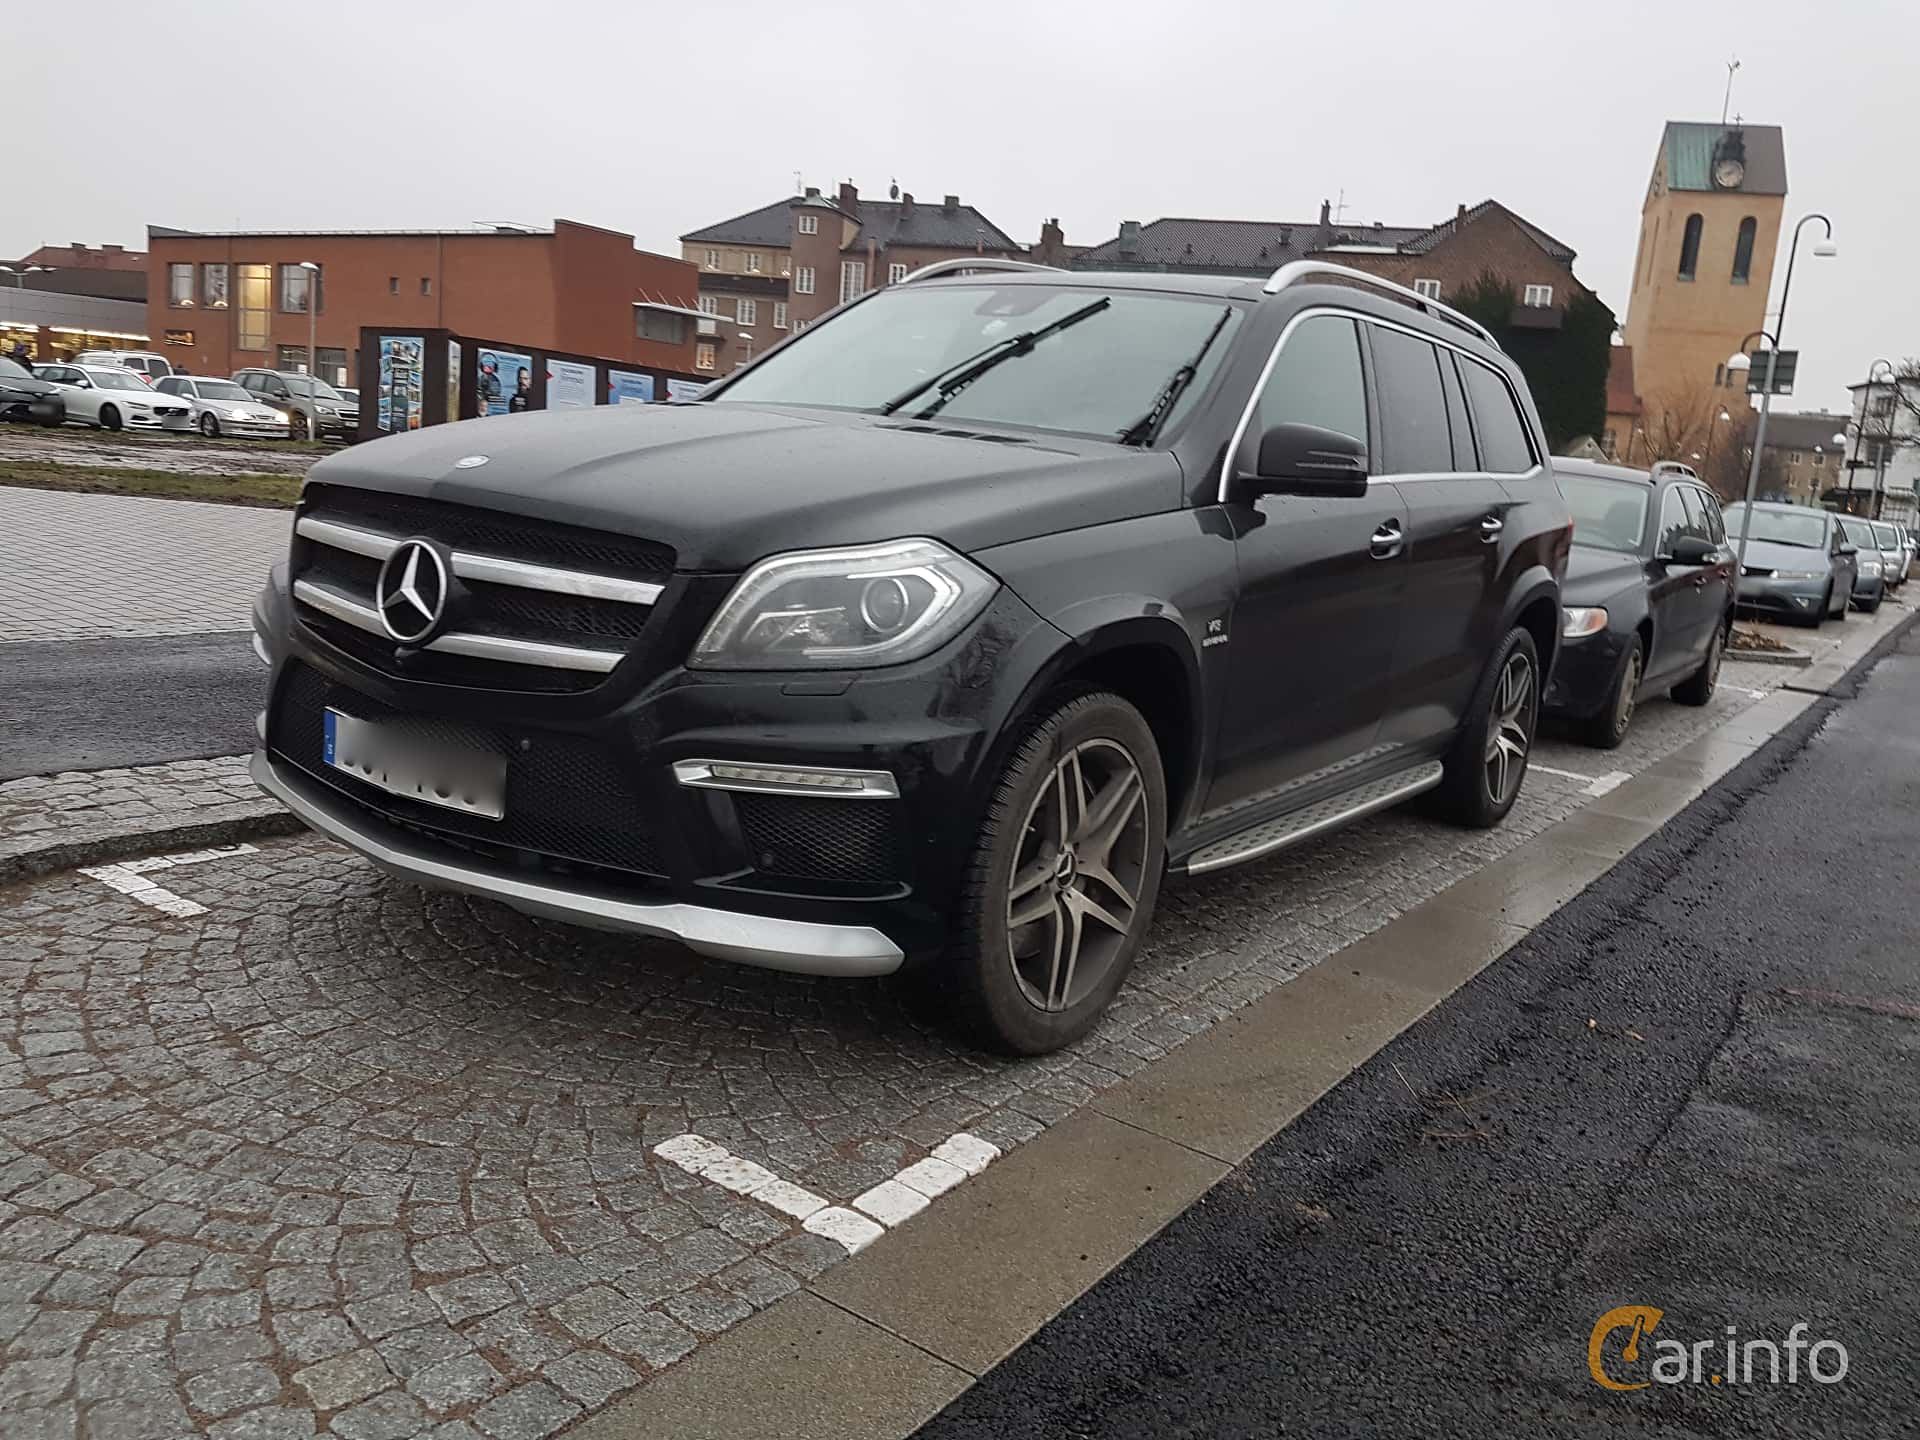 Mercedes-Benz GL 63 AMG 5.5 V8 4MATIC AMG SpeedShift Plus 7G-Tronic, 557hk, 2014